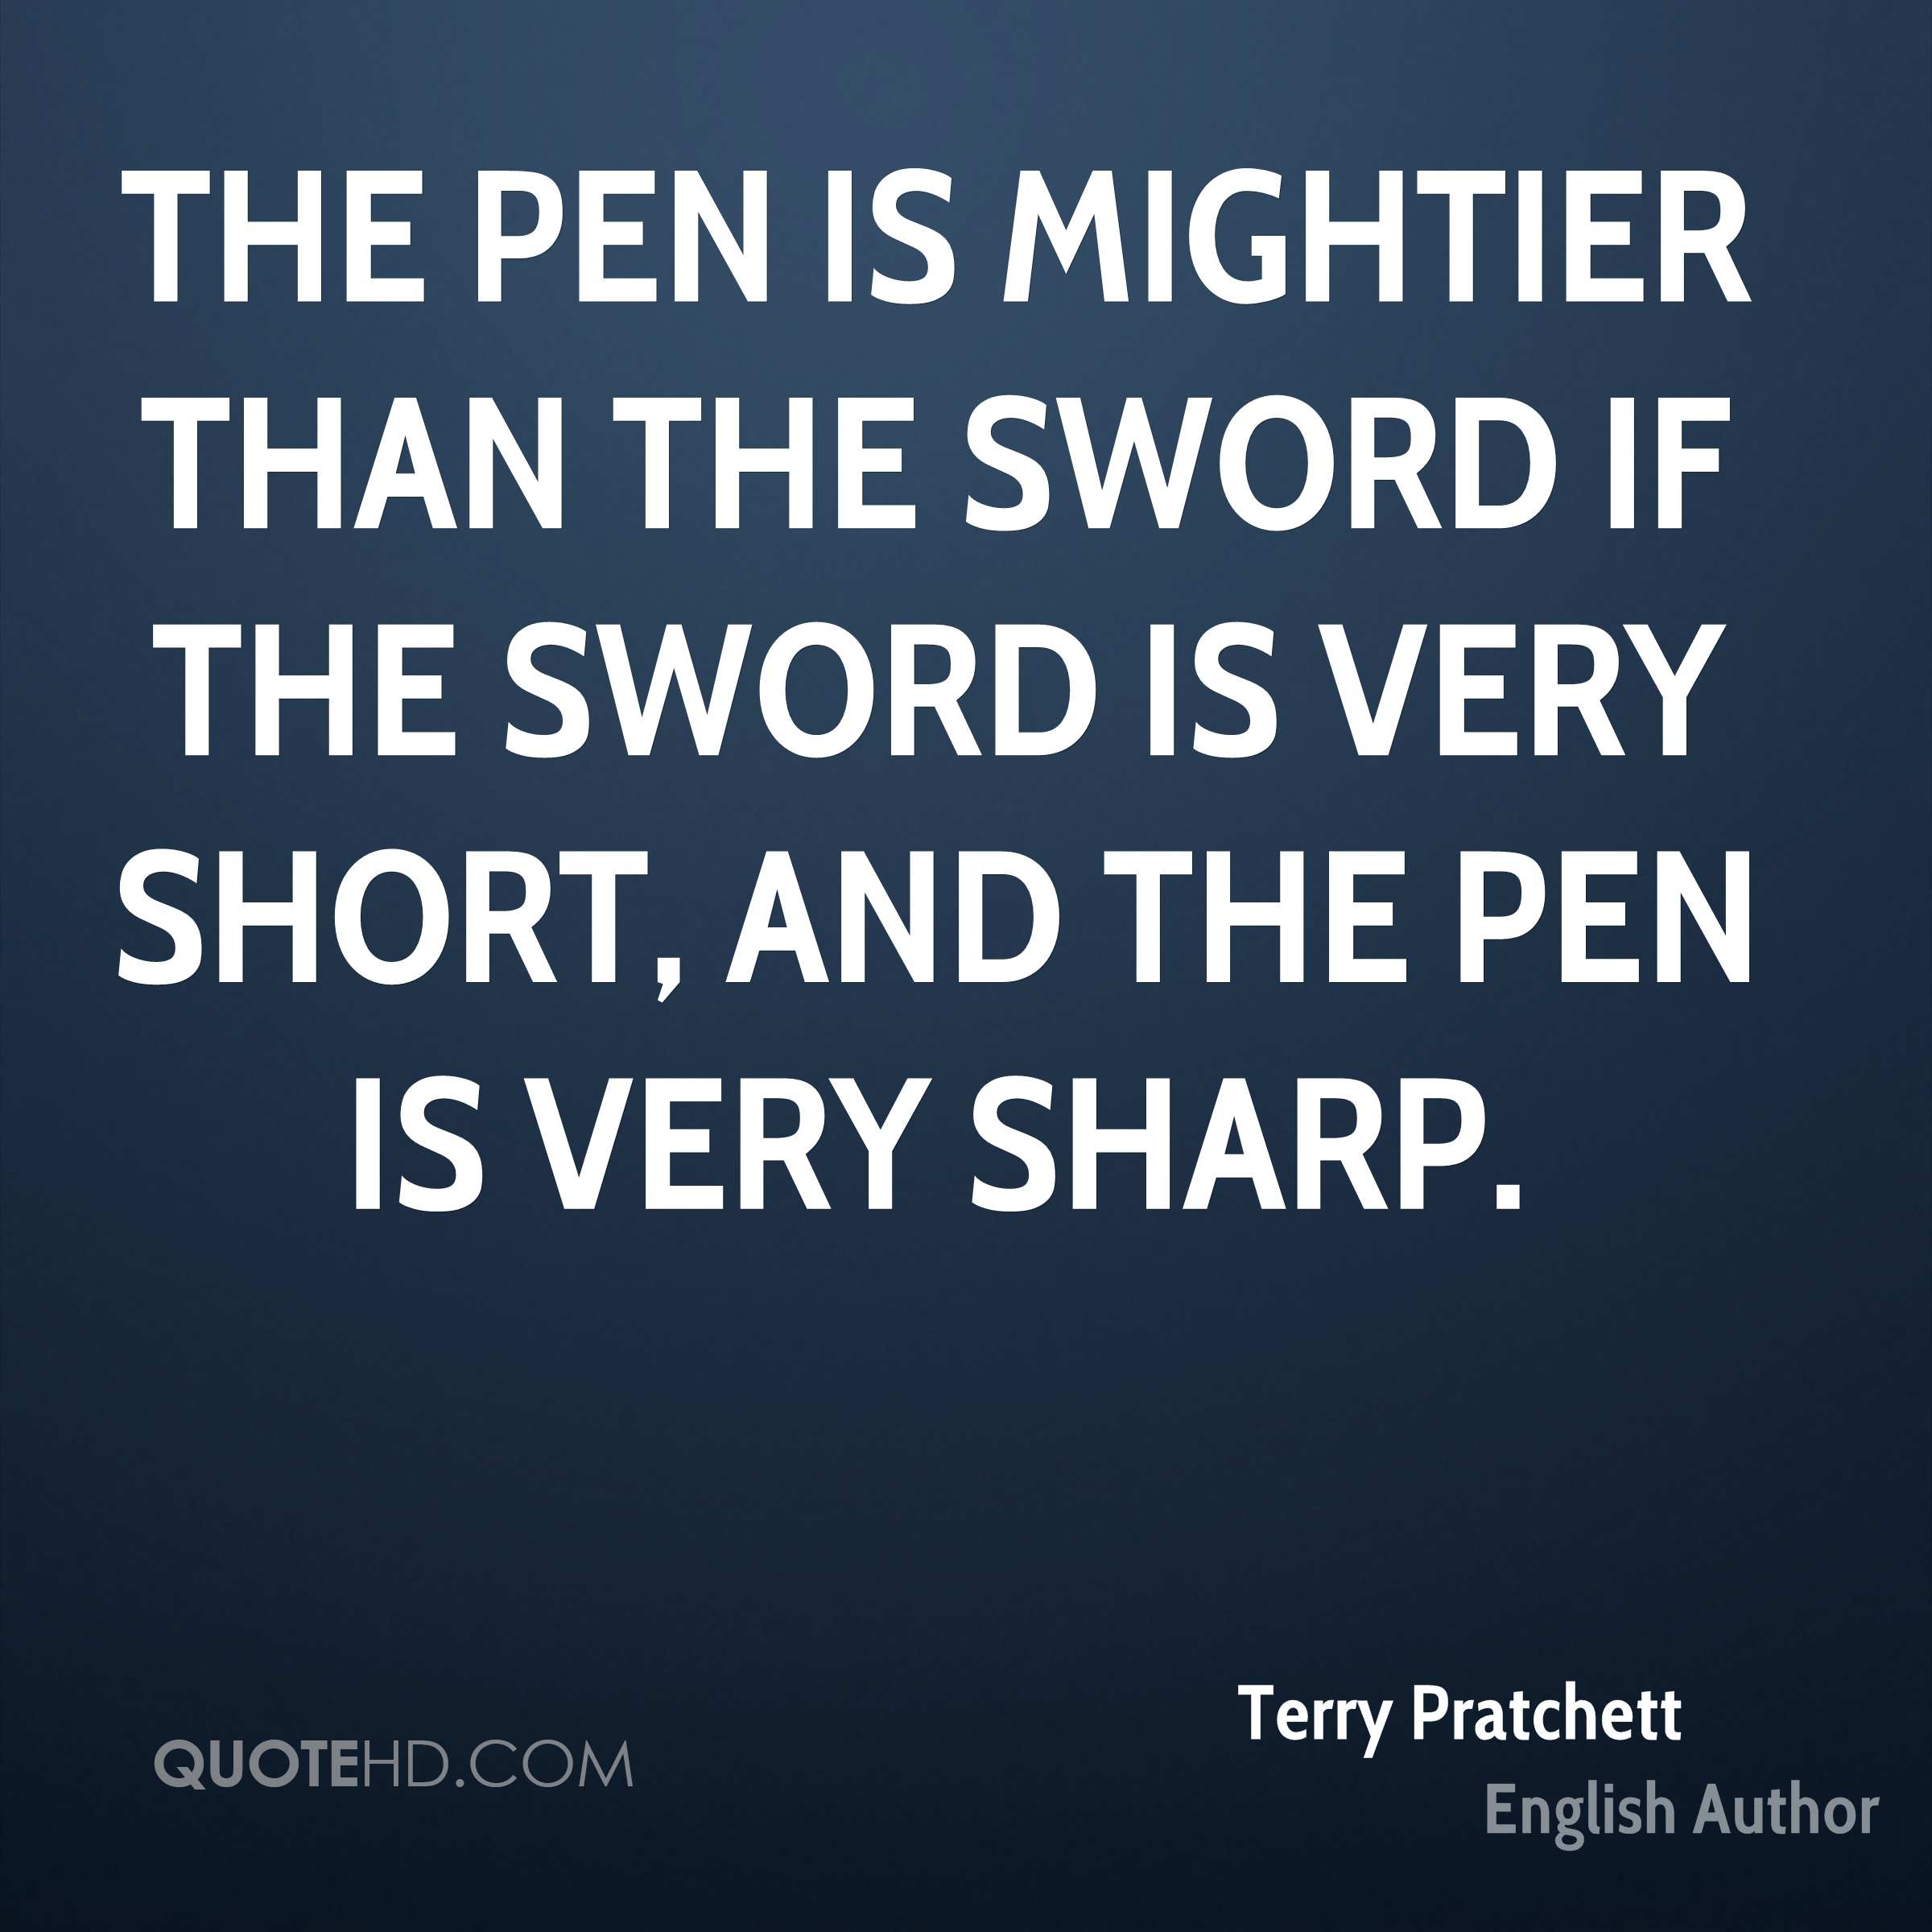 Name:  terry-pratchett-terry-pratchett-the-pen-is-mightier-than-the-sword-if.jpg